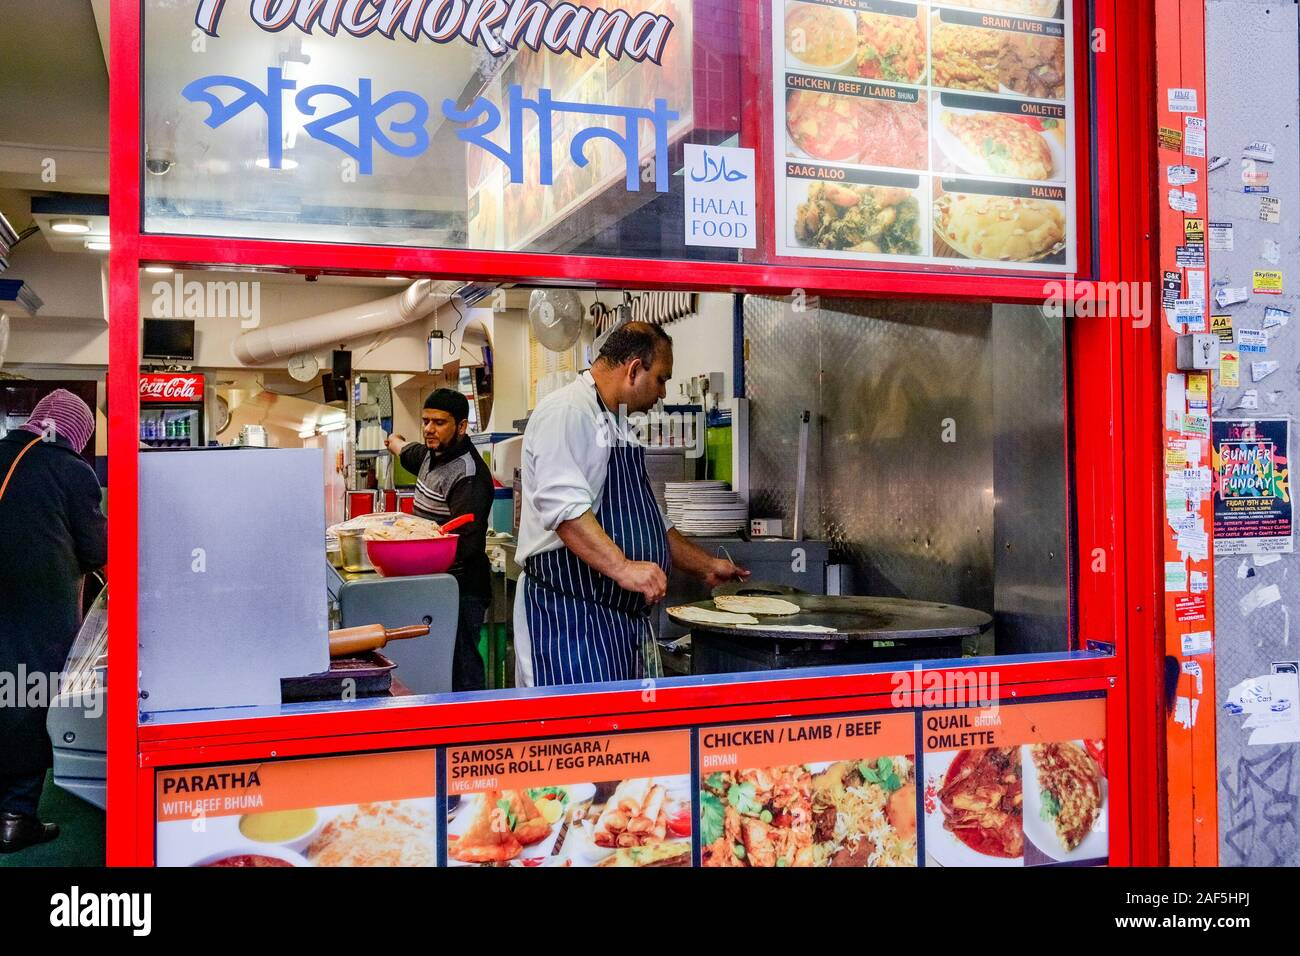 Halal Restaurant High Resolution Stock Photography And Images Alamy